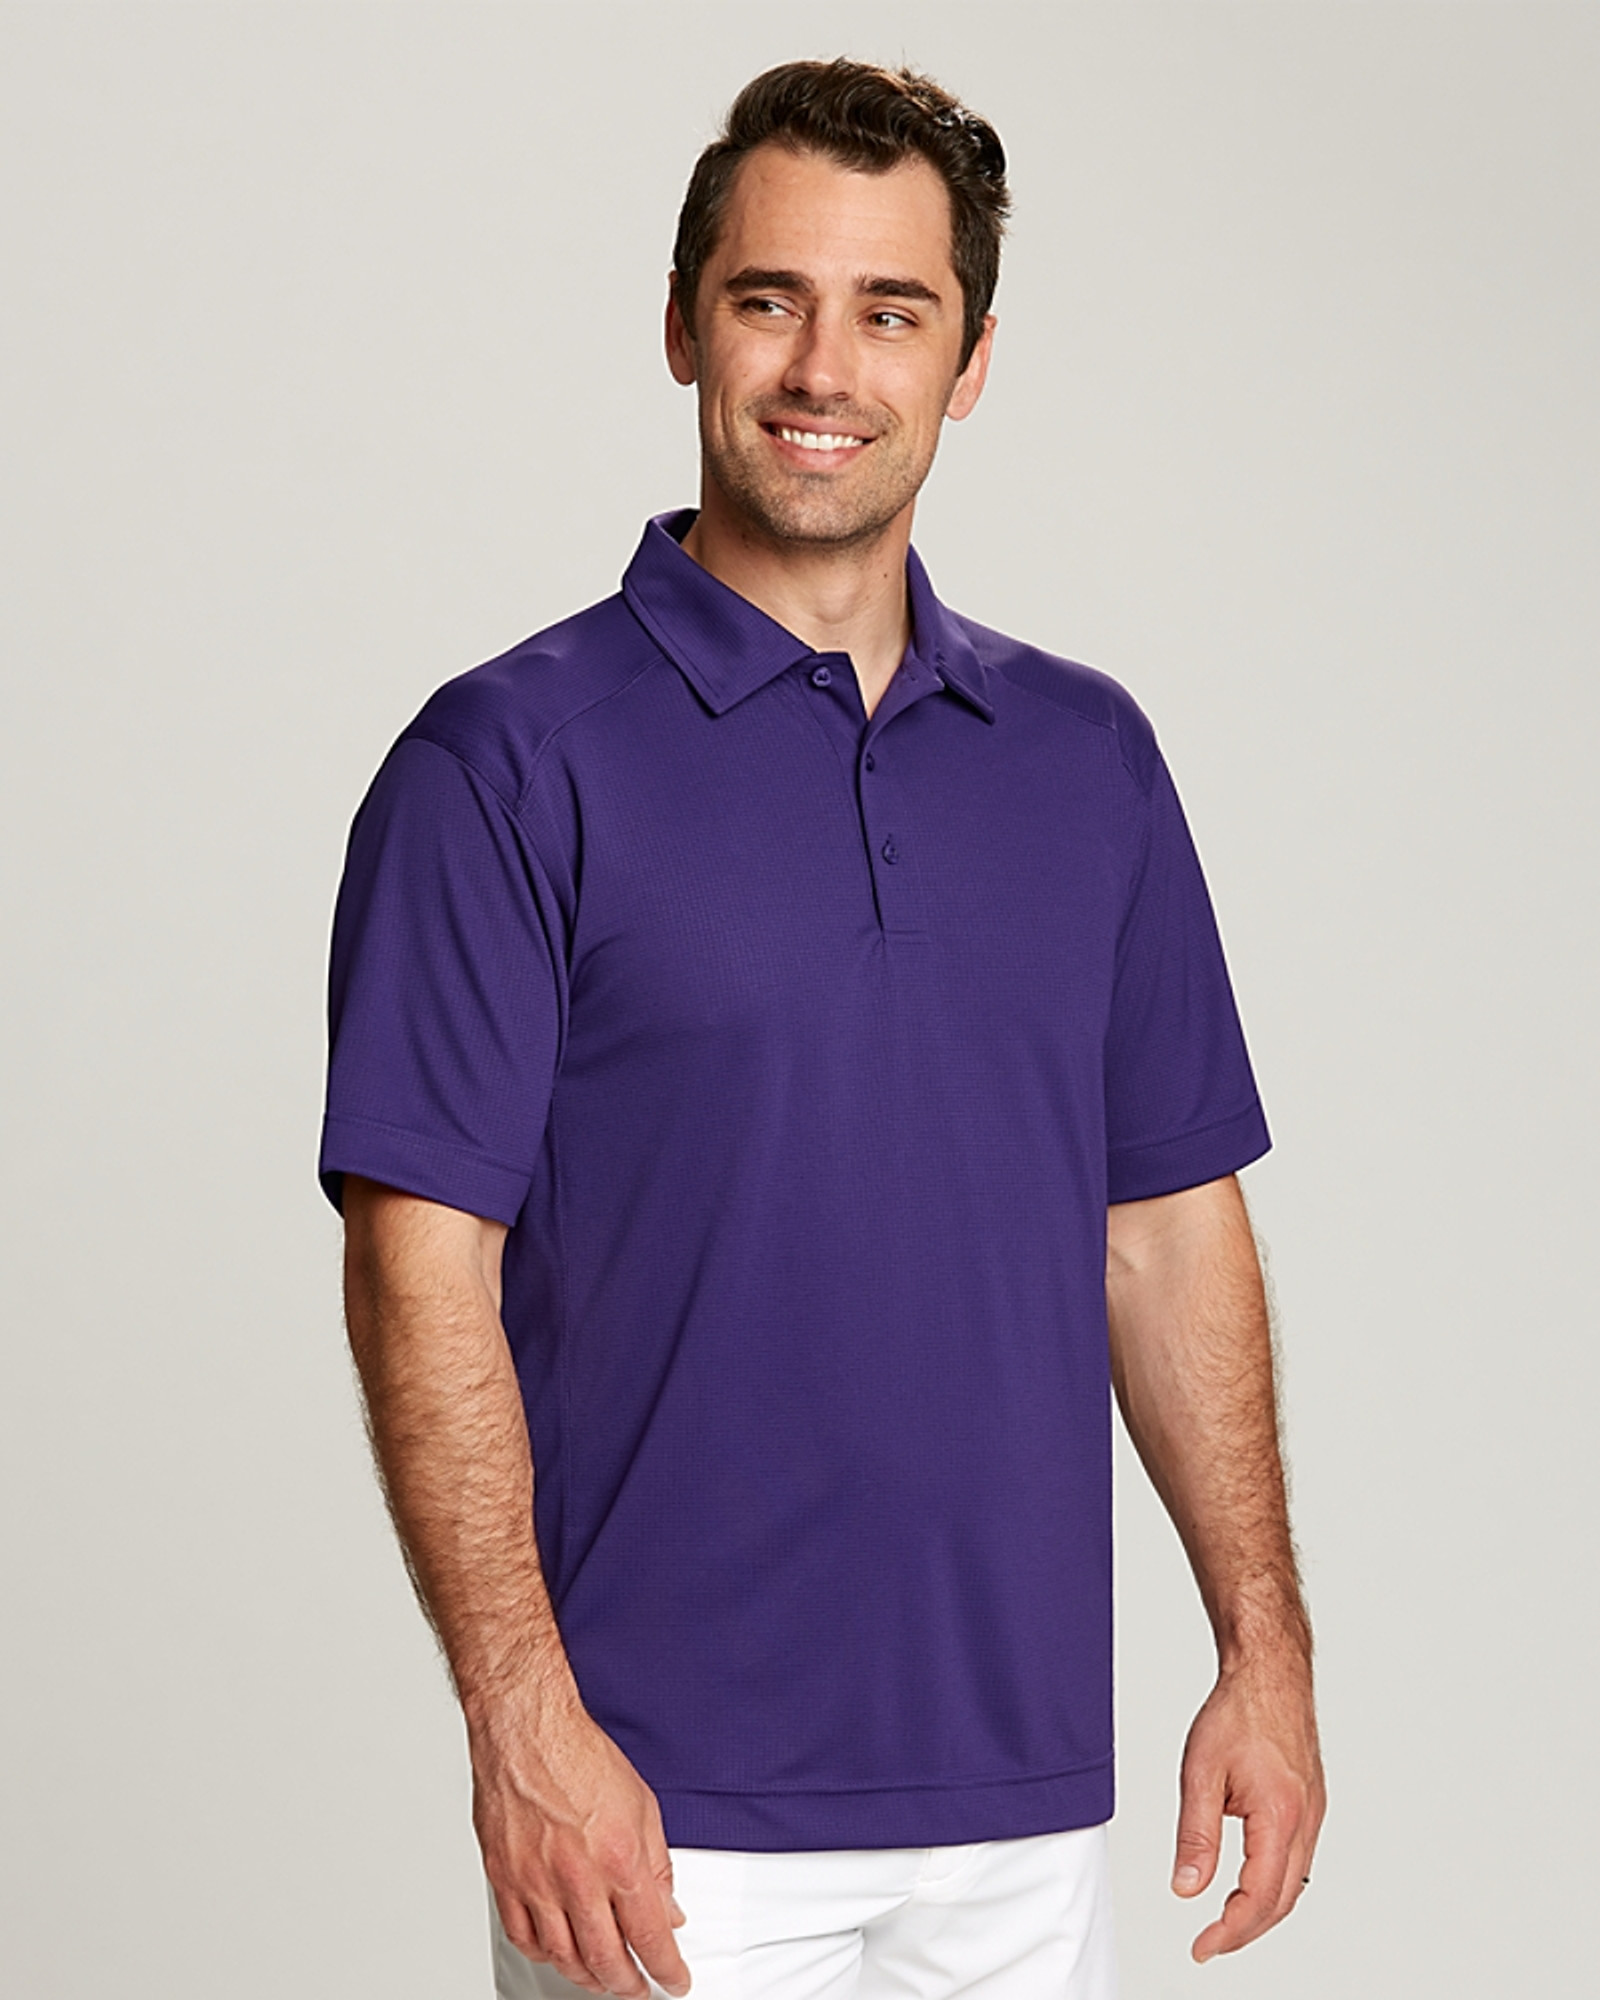 Cutter & Buck CB Drytec Genre Textured Solid Mens Big and Tall Polo